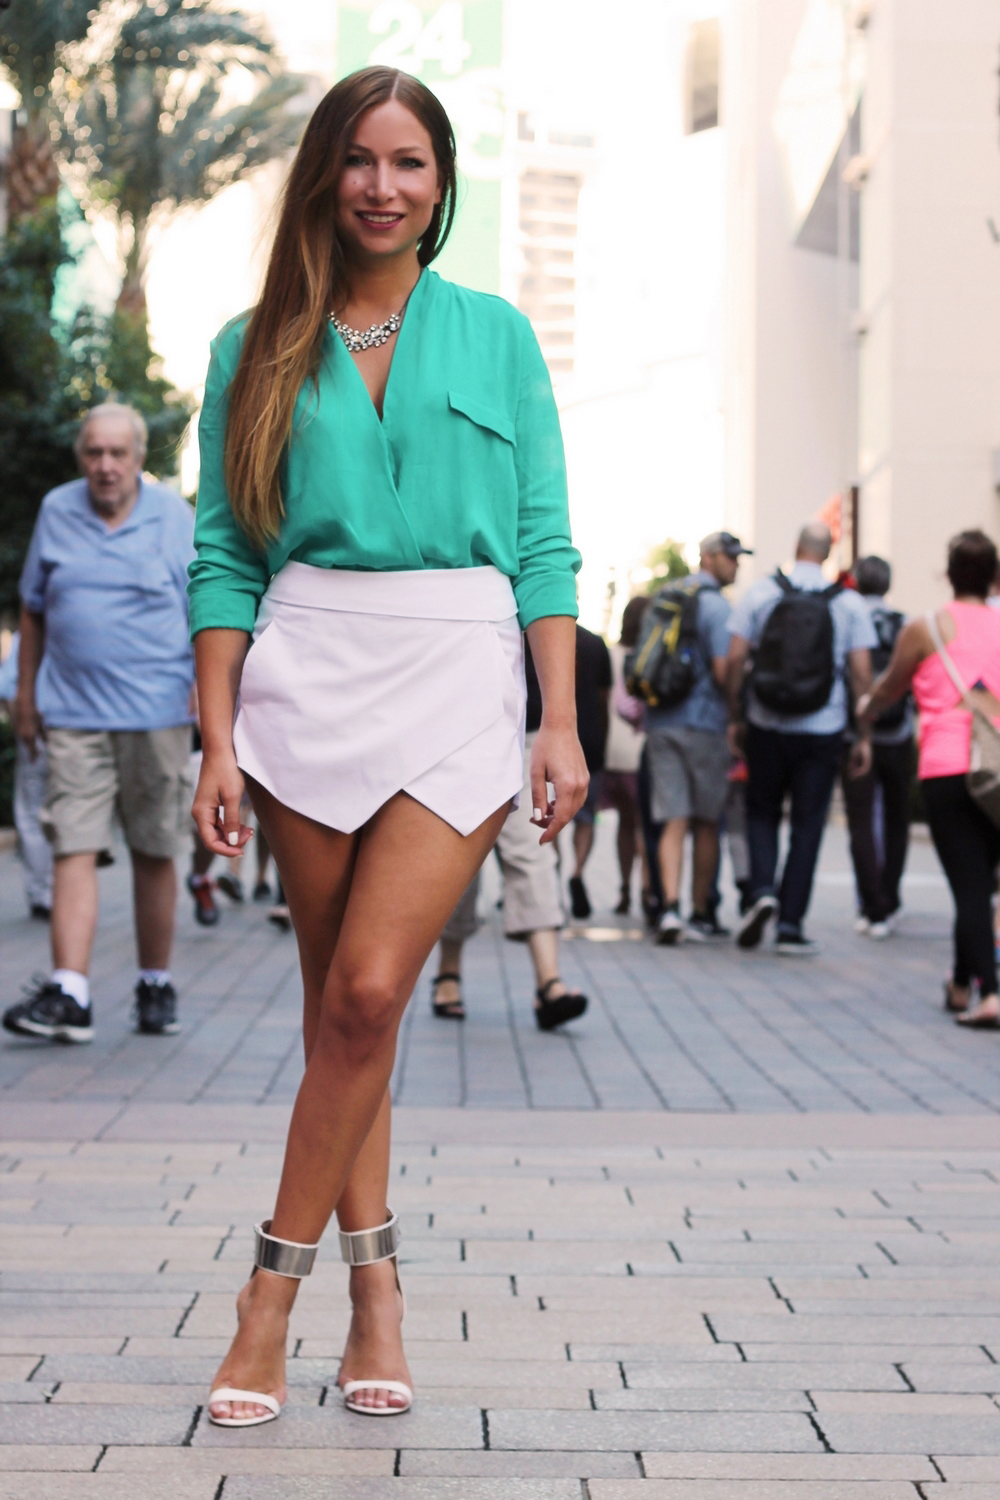 white skort sheinside white high heels zara green blouse